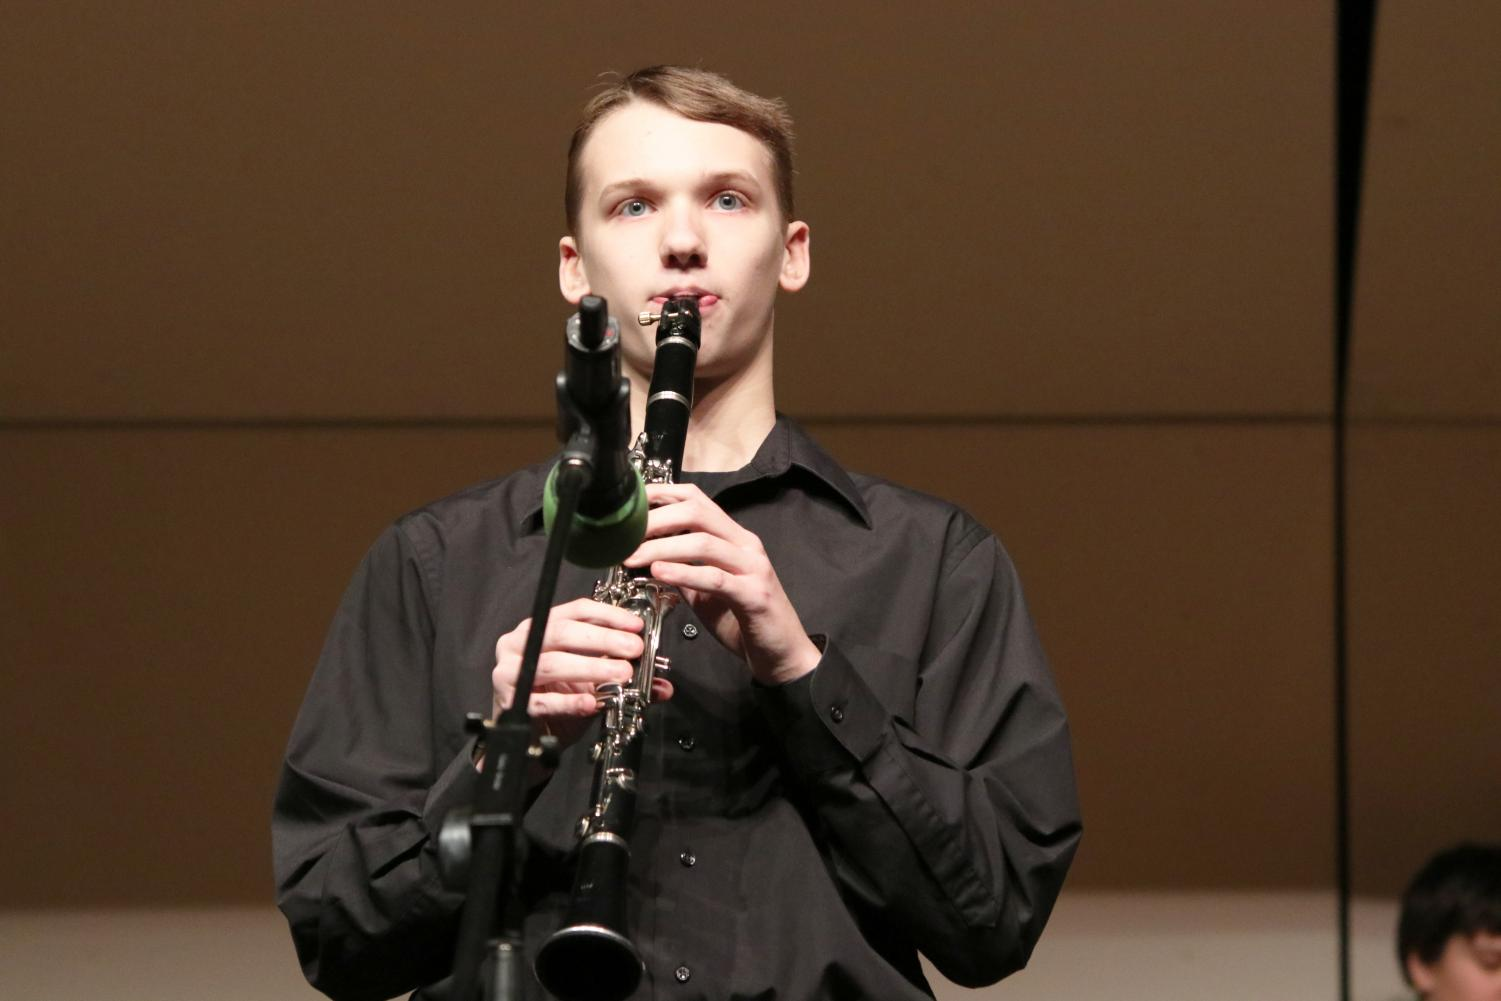 Clarinetist+Noah+Hartwig+prepares+himself+for+a+solo+during+the+first+piece.